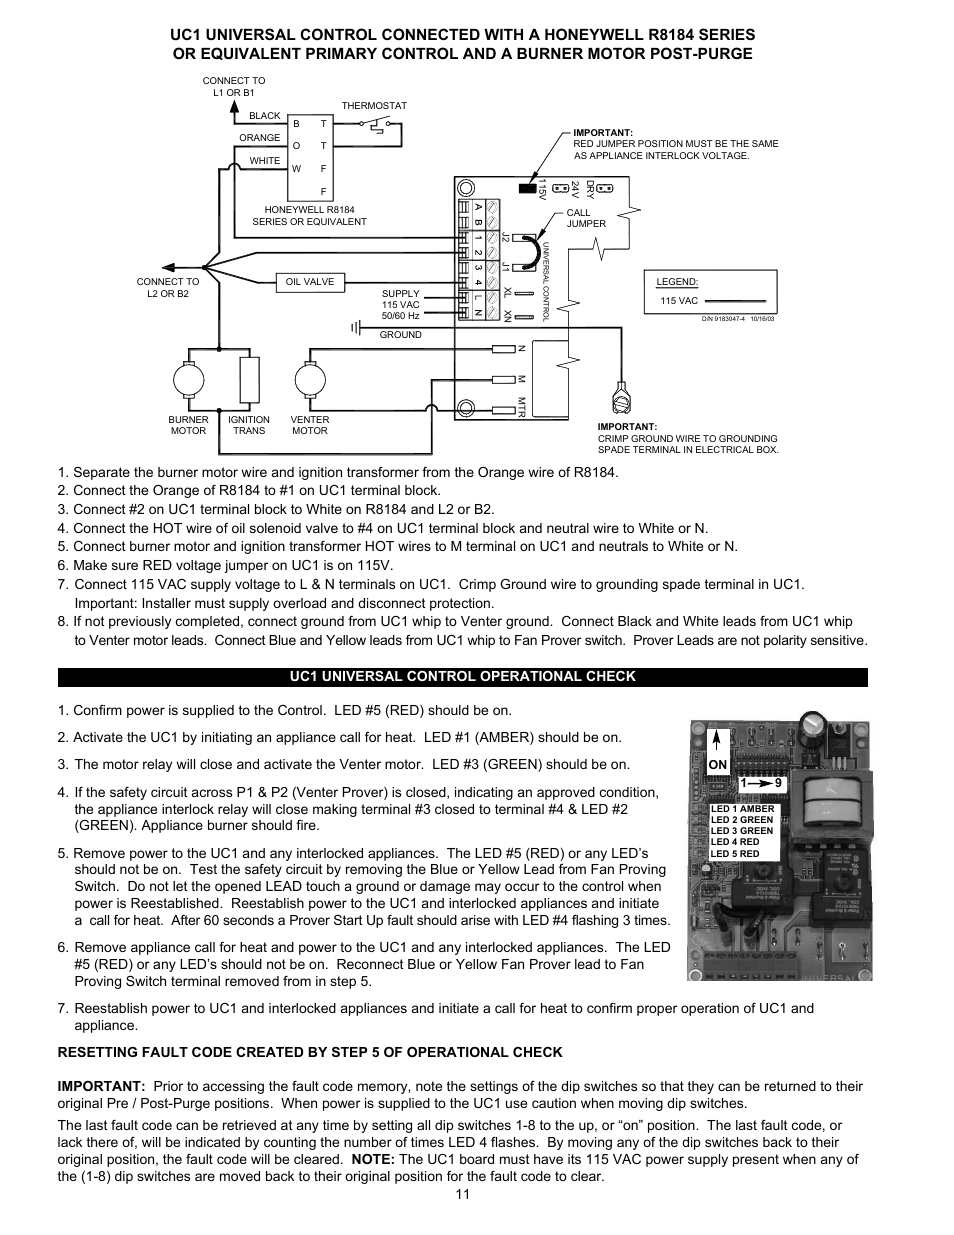 Tjernlund Uc1 Universal Control Version X04 8504107 Rev C 02 04 Honeywell R8184g Wiring Diagram User Manual Page 12 15